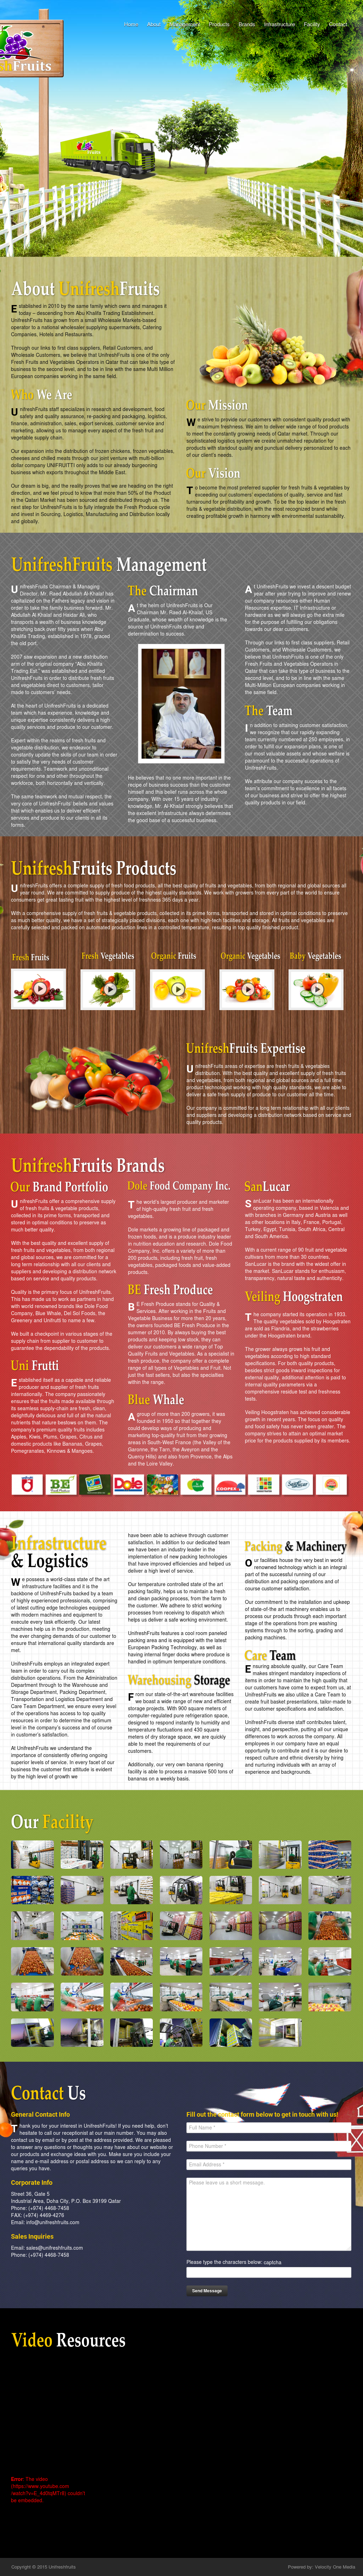 Unifresh Fruits Competitors, Revenue and Employees - Owler Company